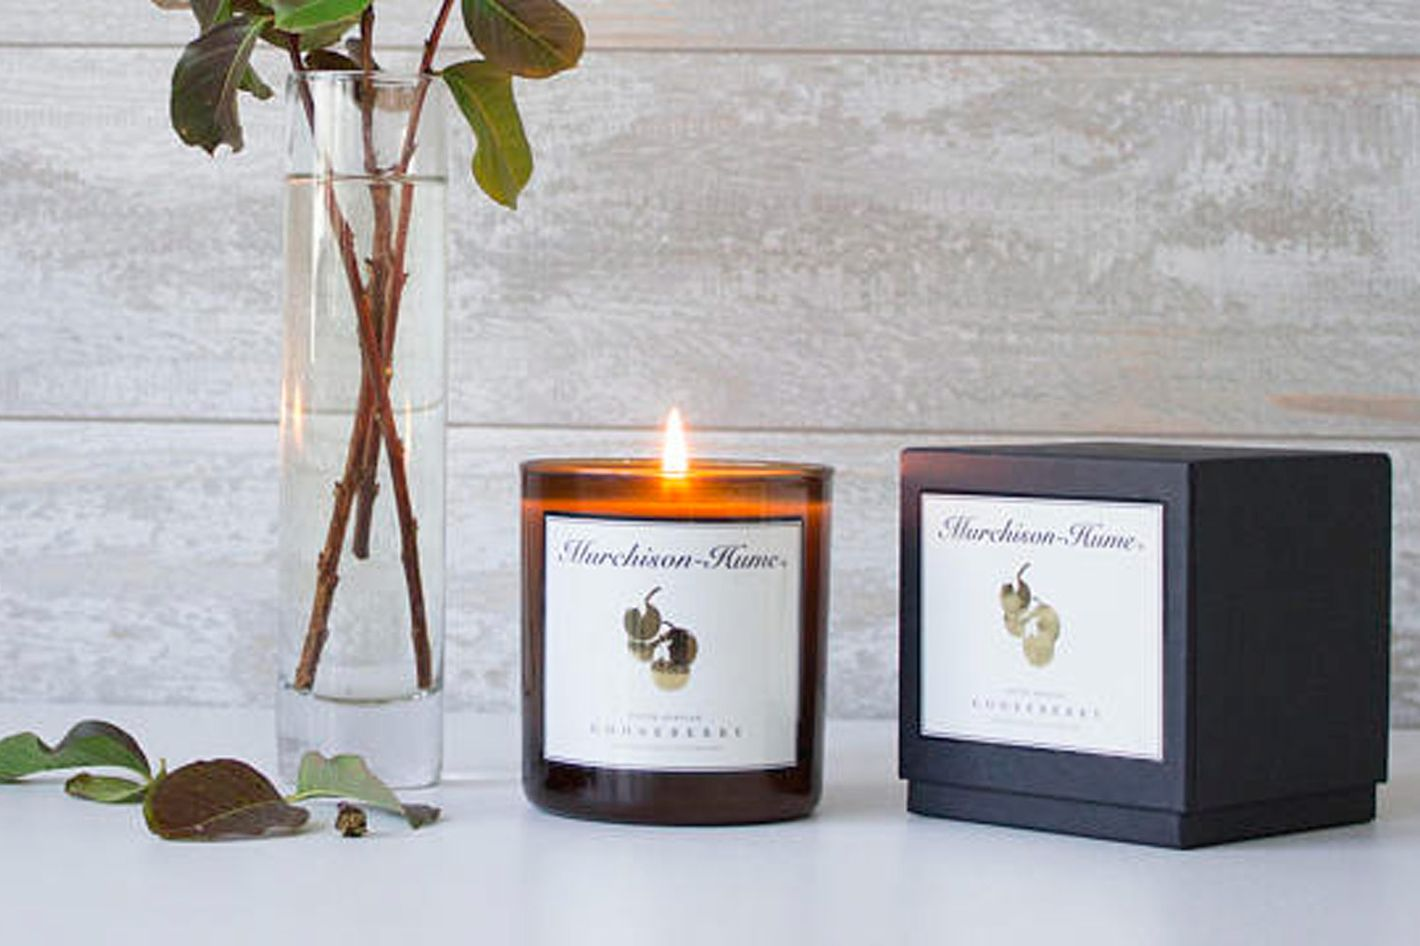 Murchison-Hume Soy-Blend Candle in South African Gooseberry